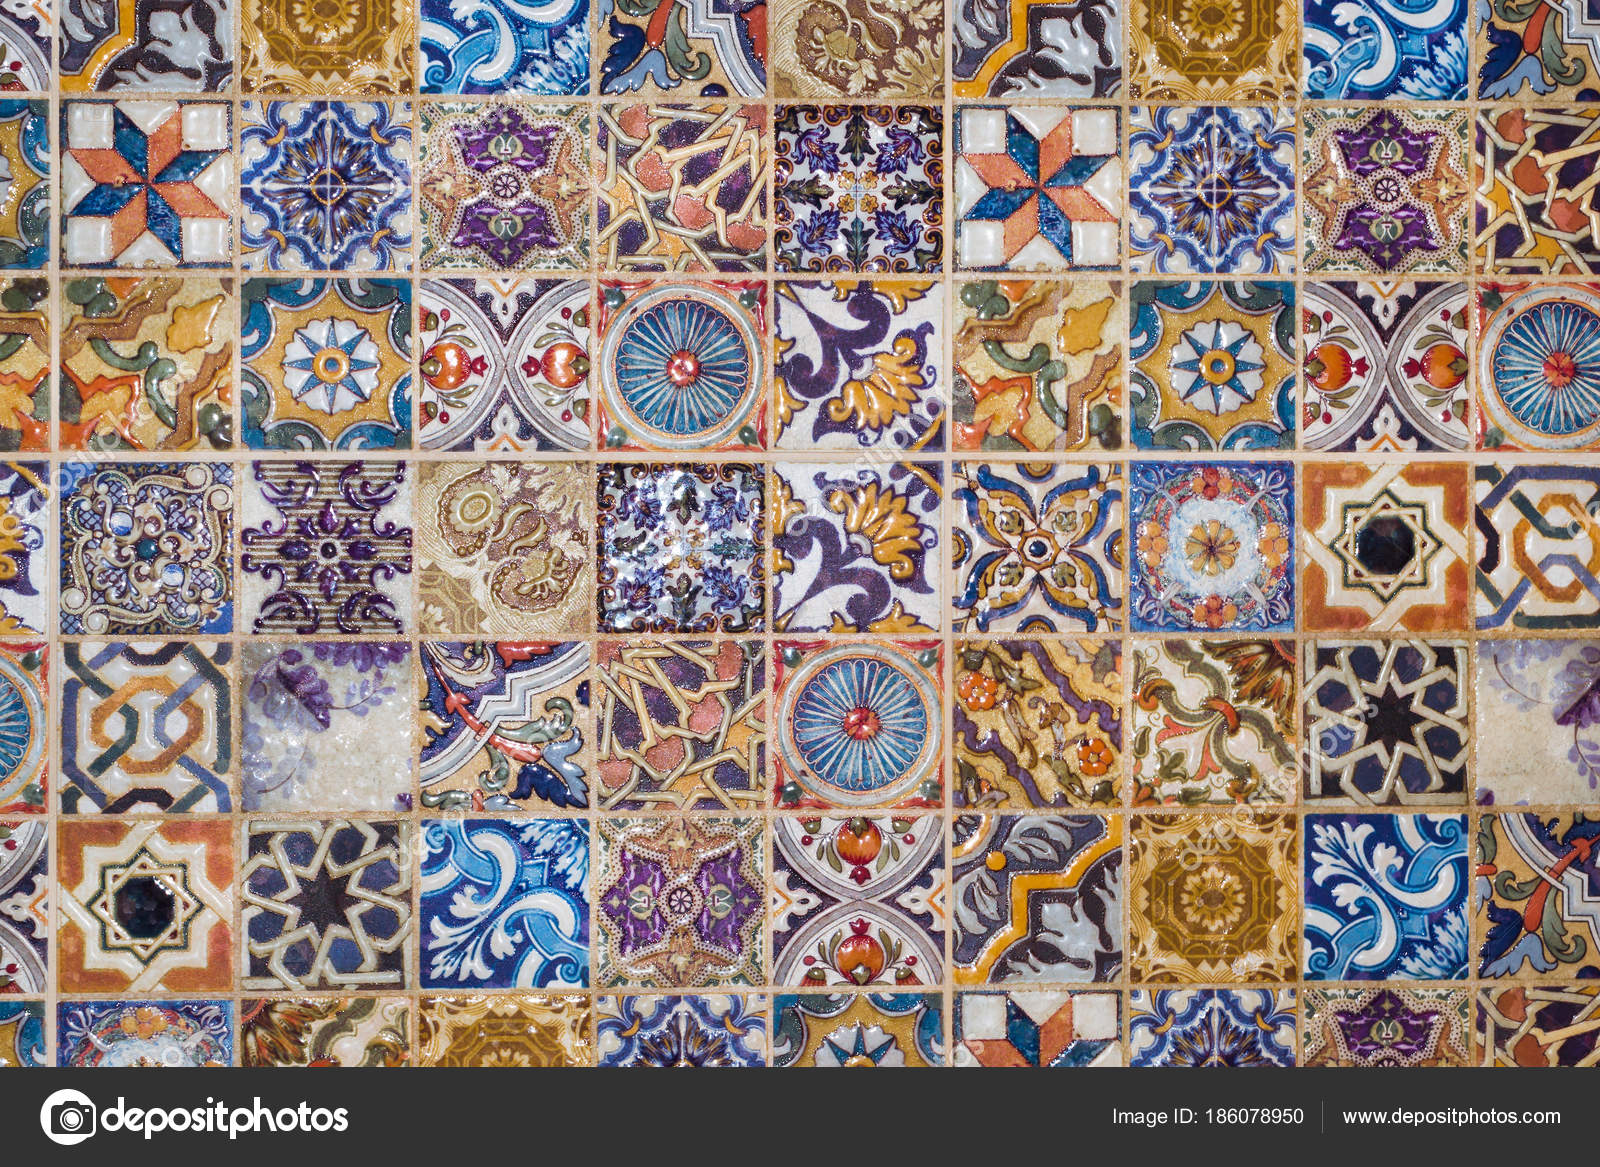 Traditional european ceramic mosaic tile pattern stock photo checkered traditional european ceramic mosaic tile background pattern architectural mosaic detail abstract background for street bath and pool dailygadgetfo Image collections